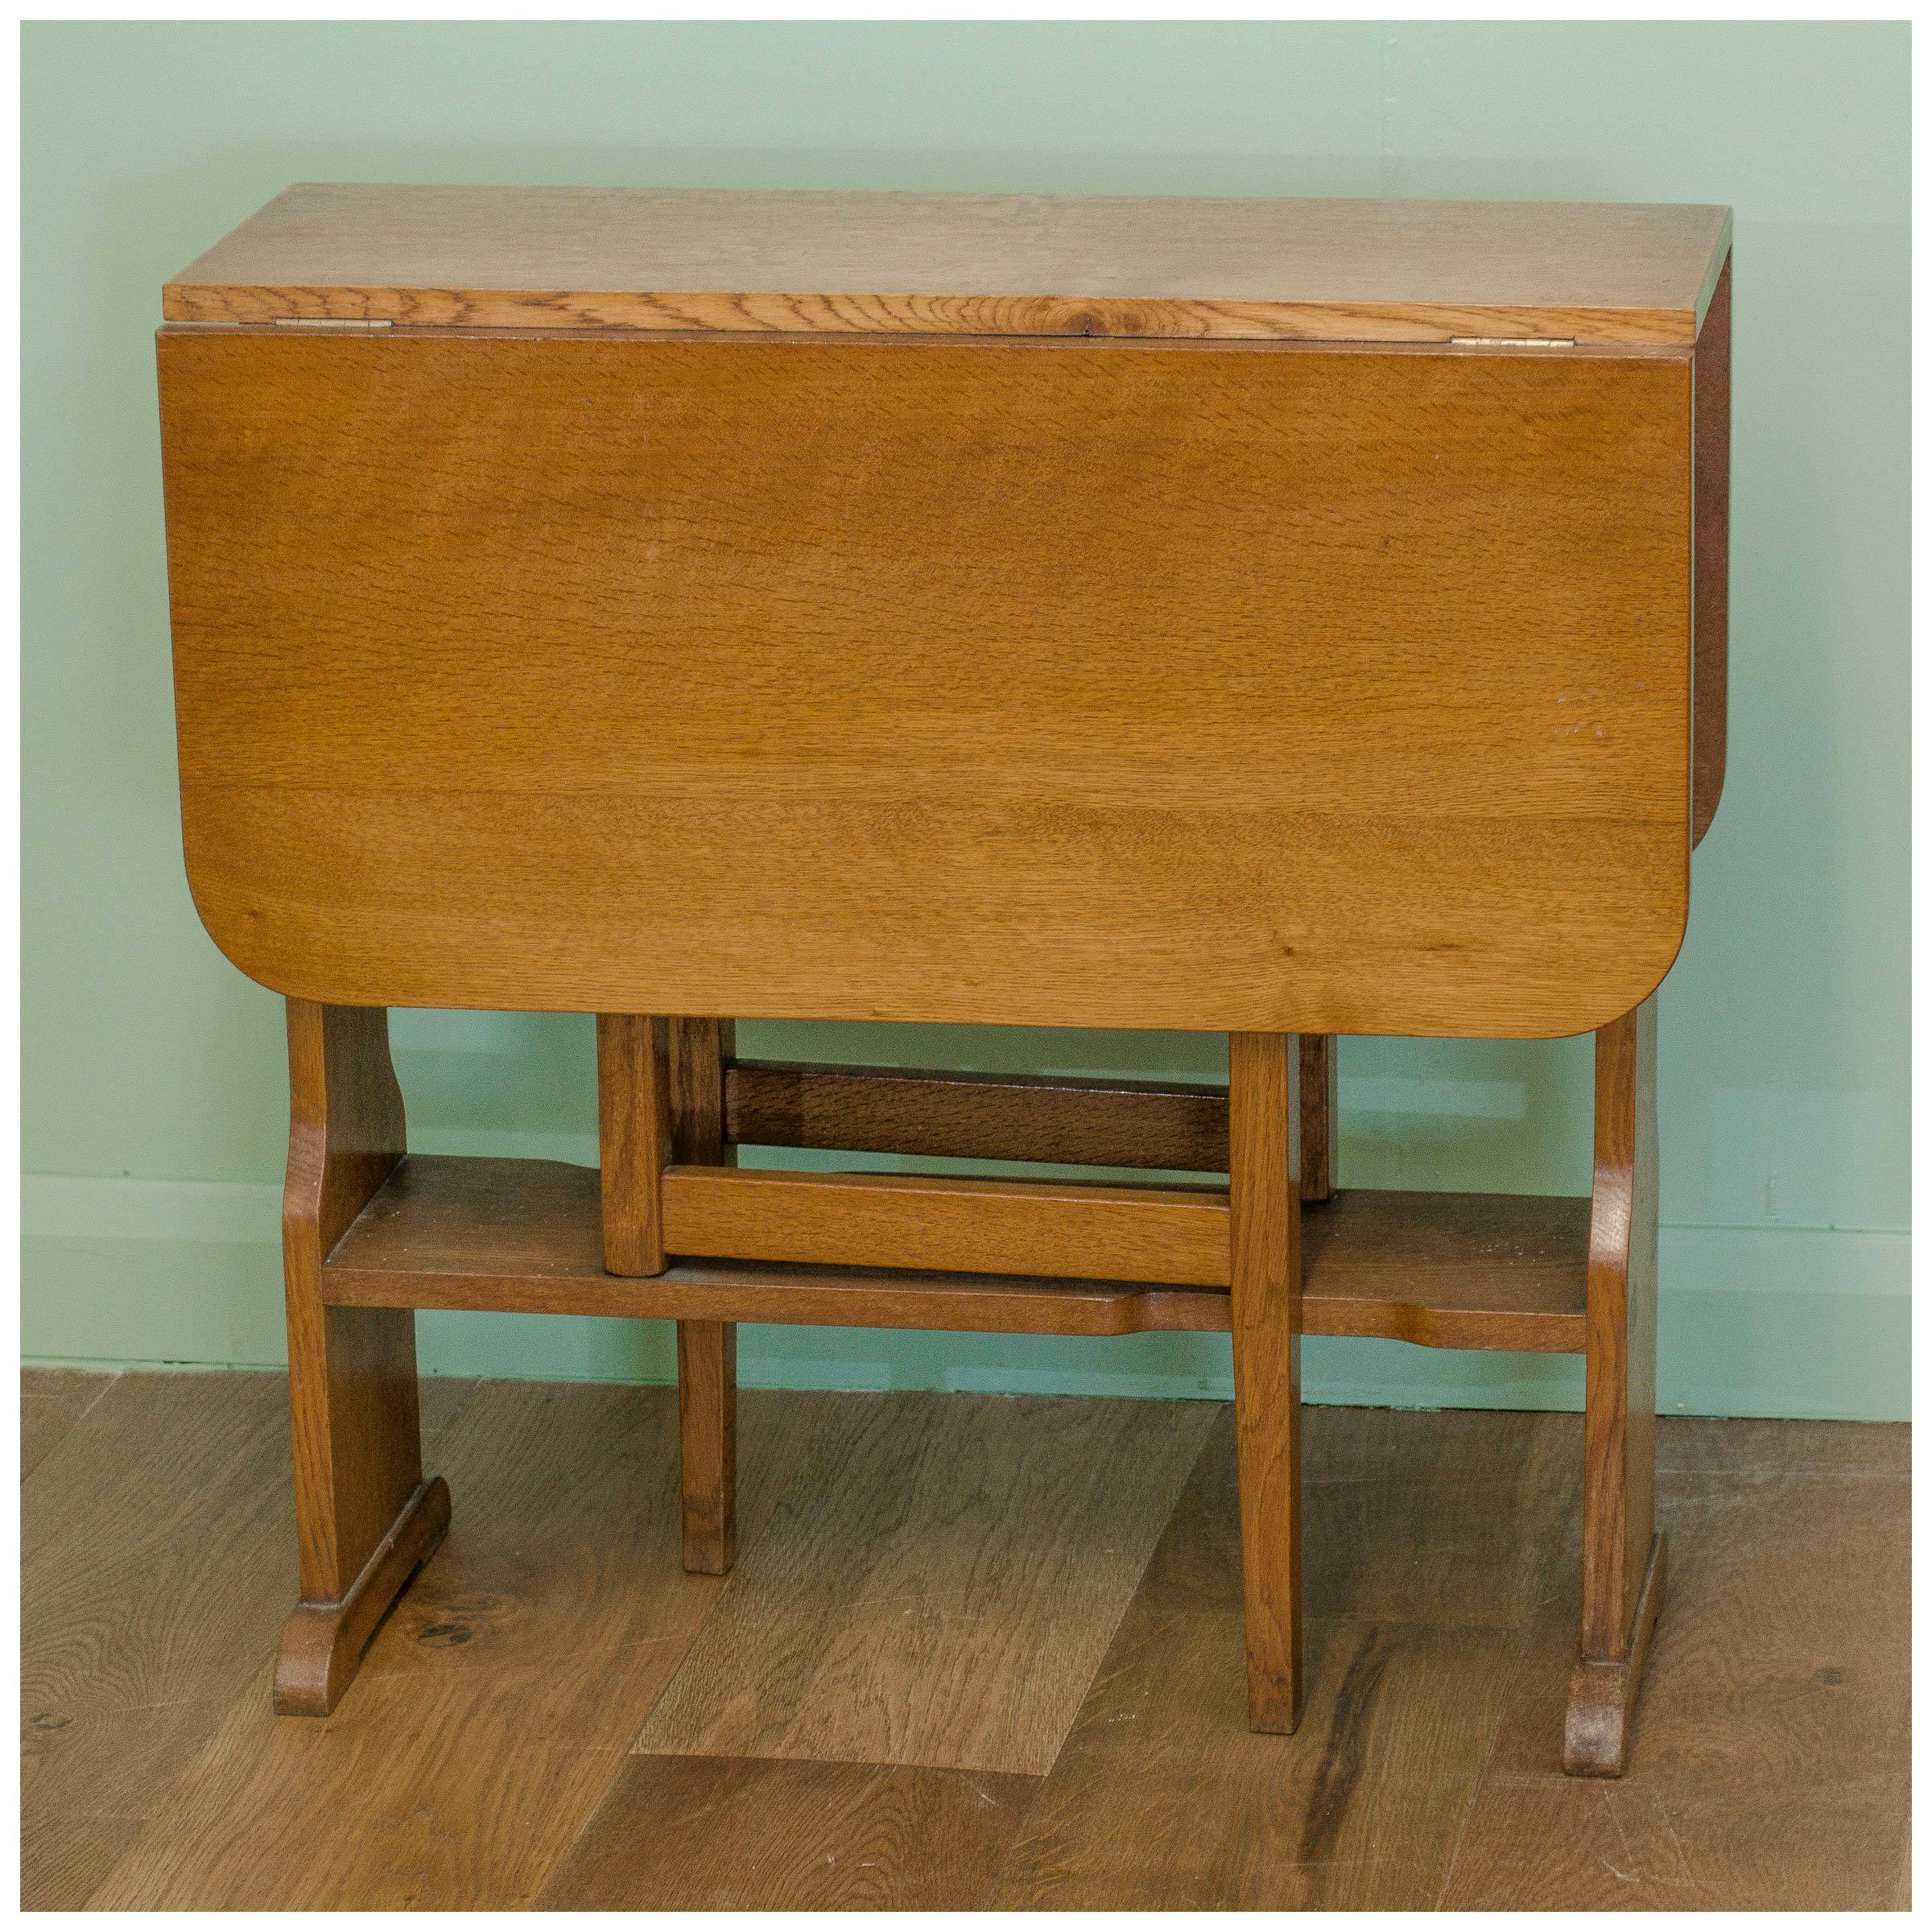 arts-and-crafts-oak-drop-leaf-table-by-arthur-w-simpson-the-handicrafts-kendal-b0020177a.jpg